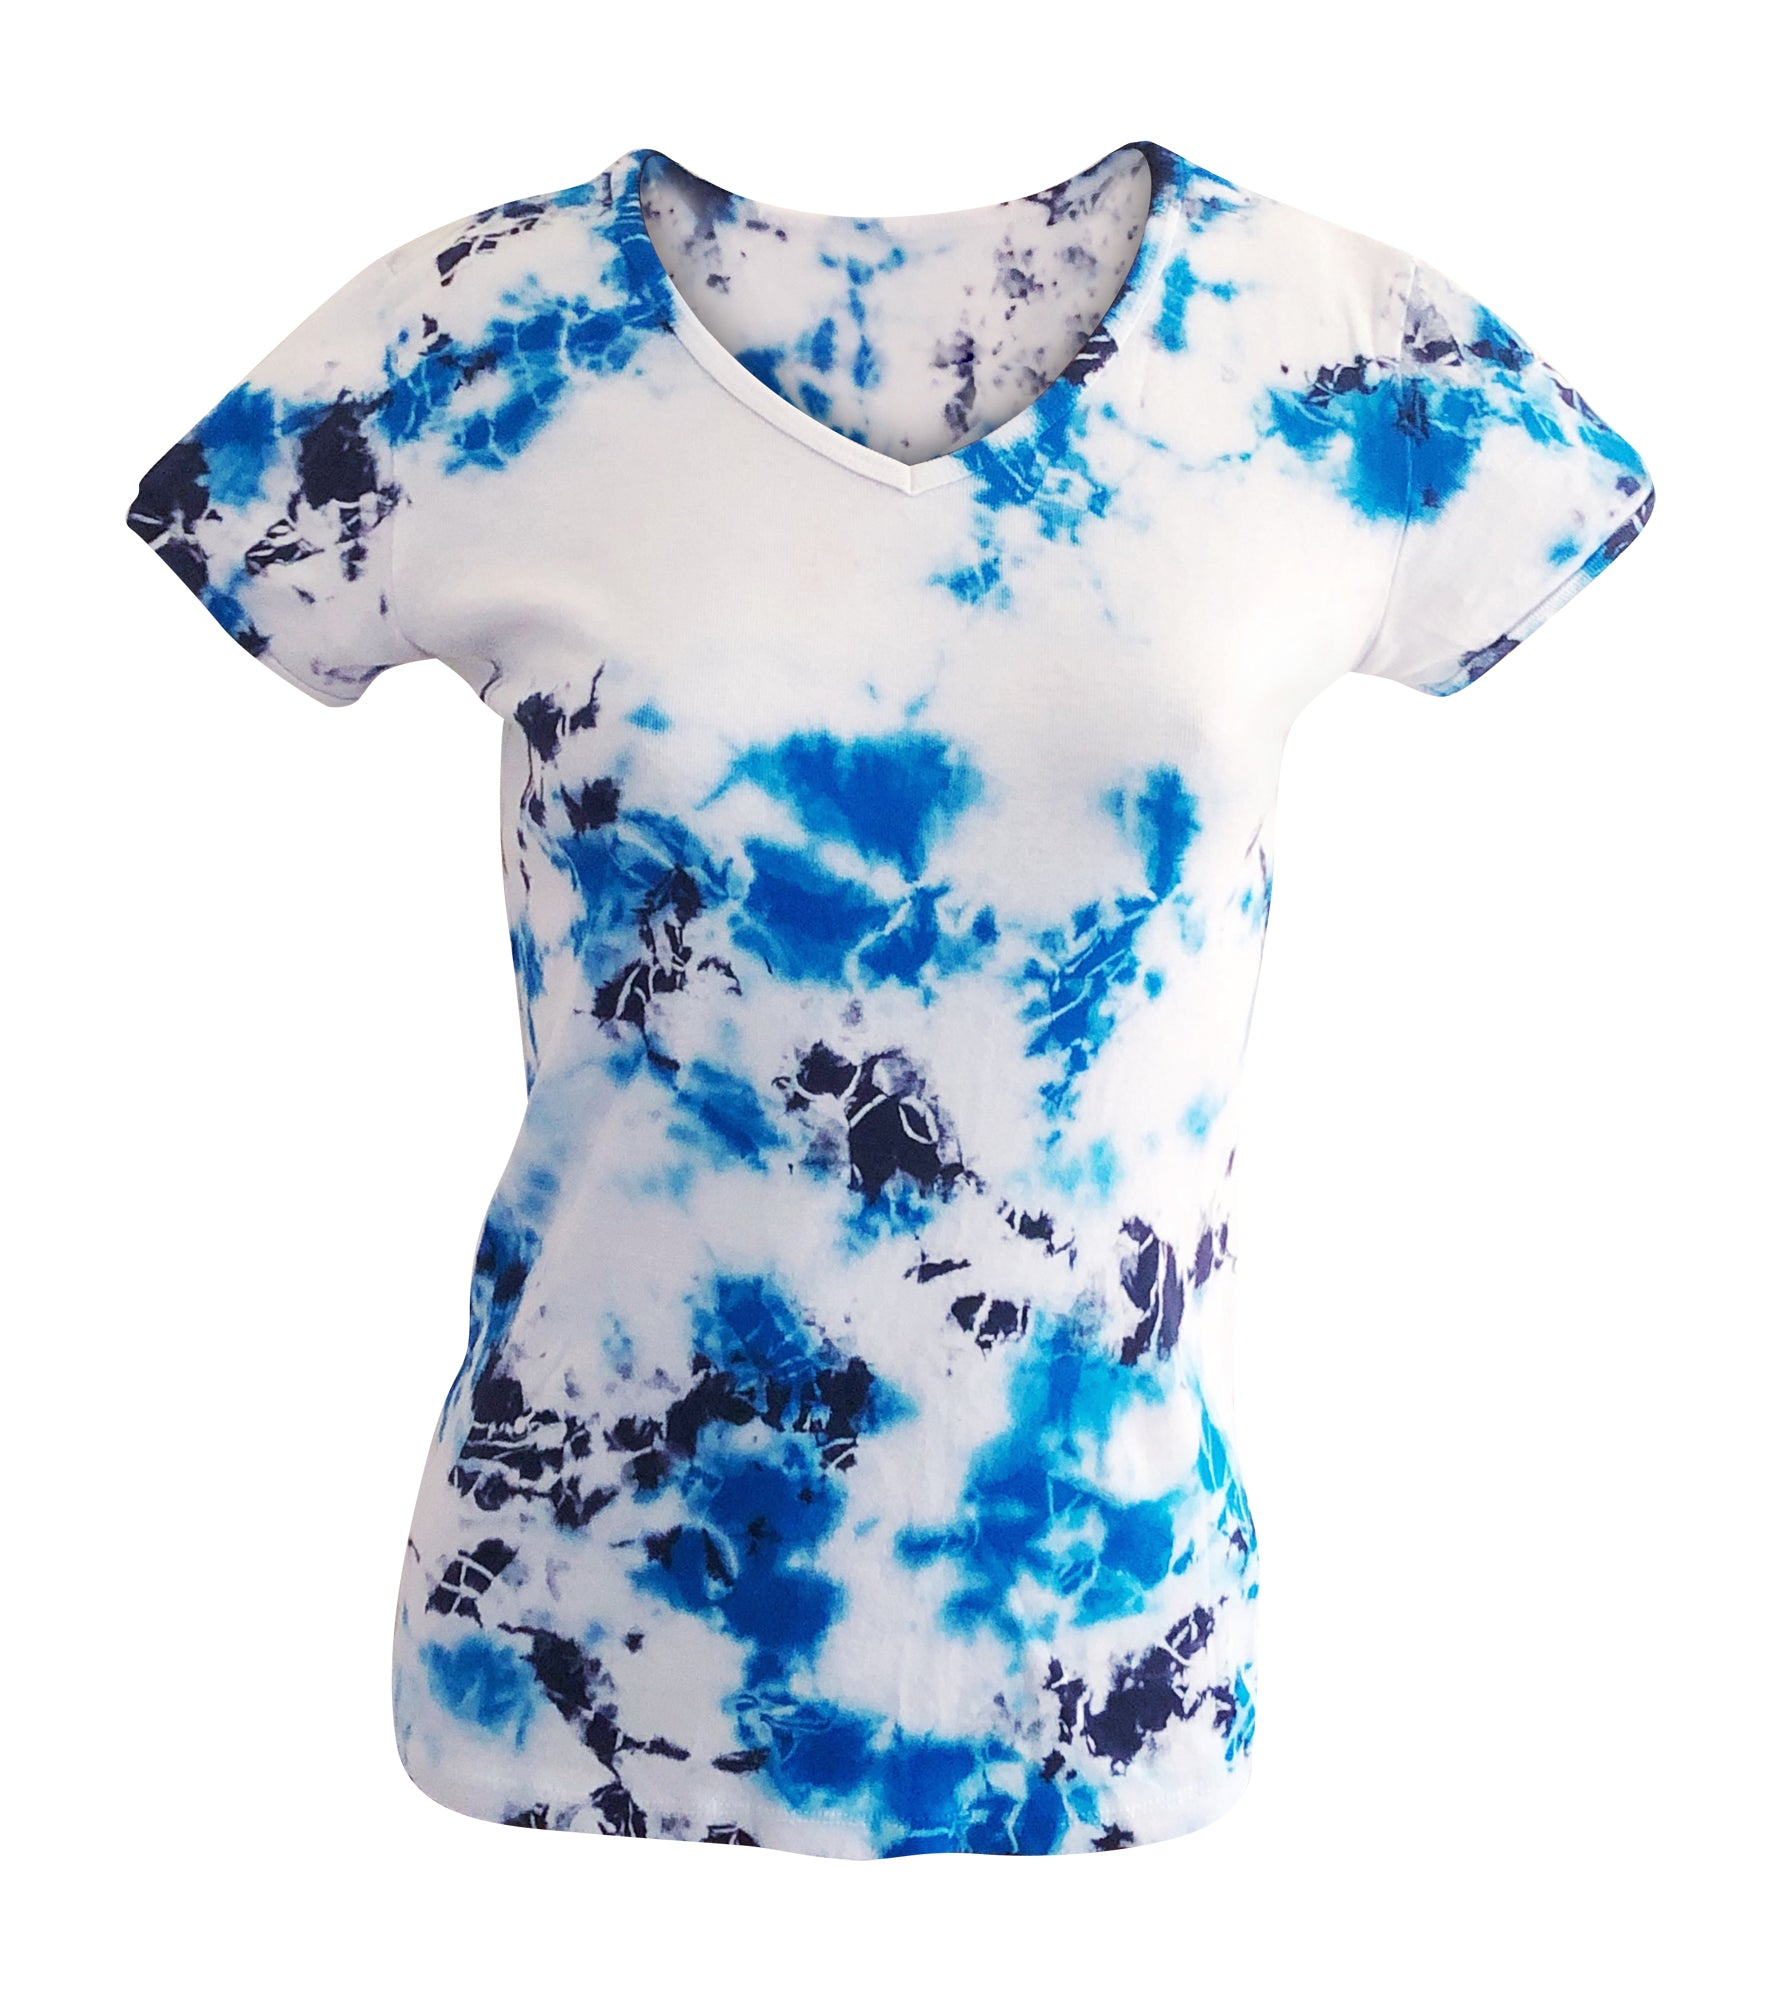 Women's Tie Dye Tee Short Sleeved